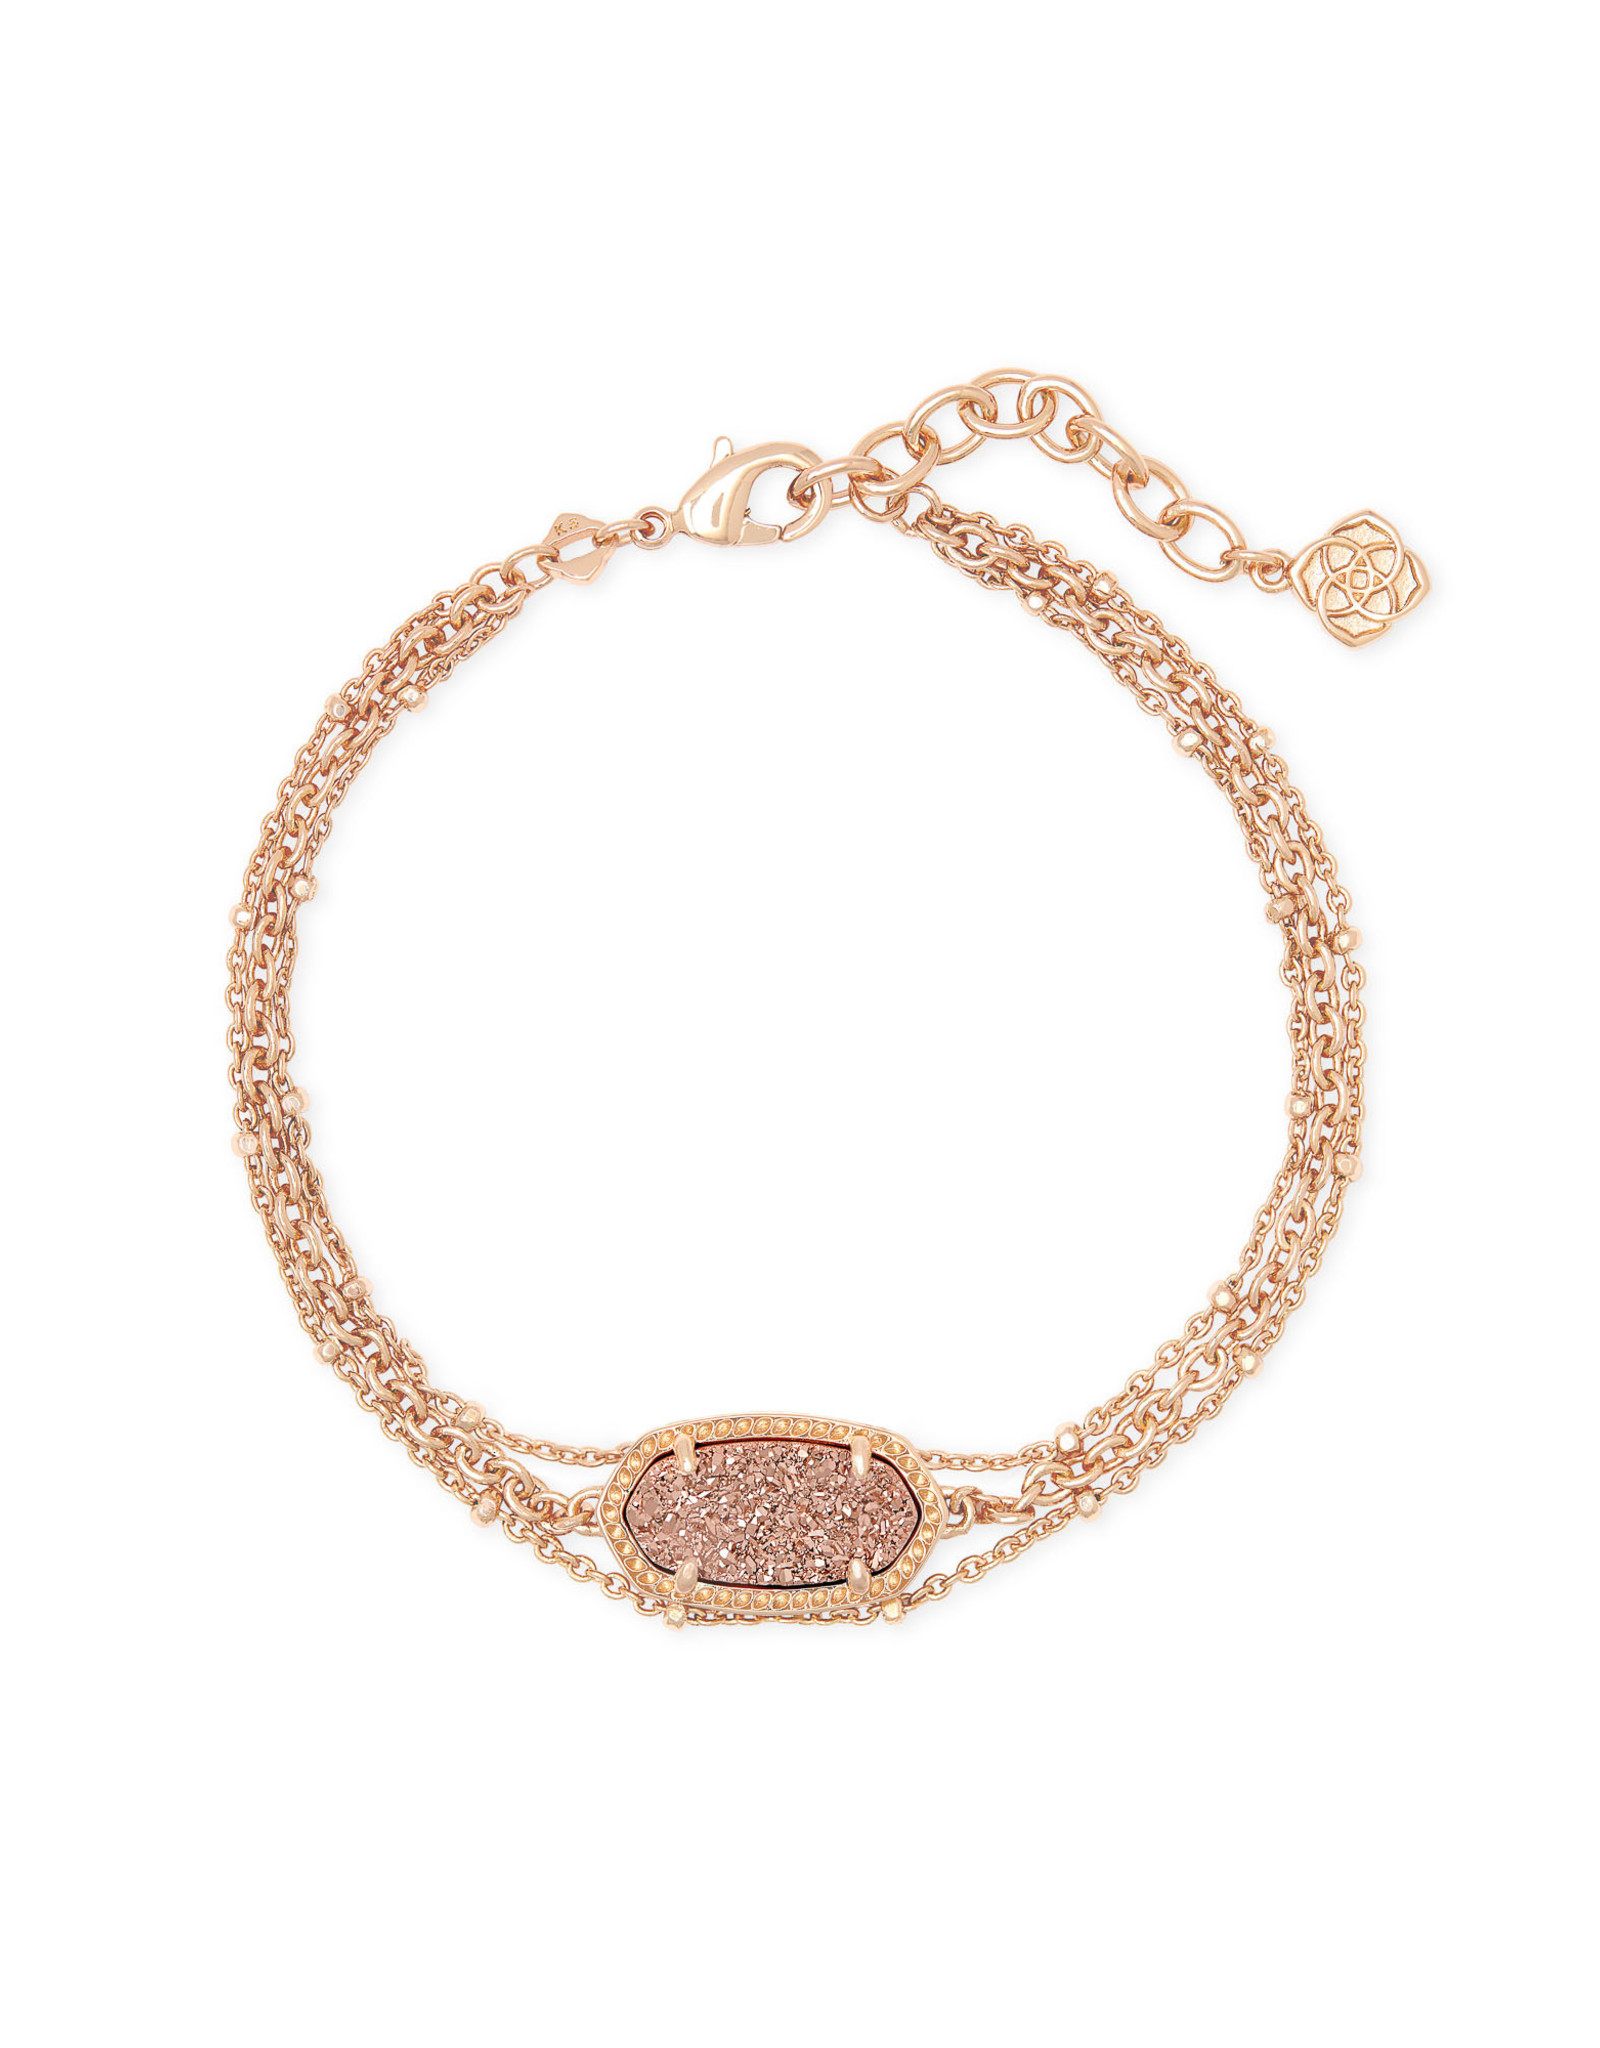 Kendra Scott Elaina Multi Strand Bracelet - Rose Gold Drusy/Rose Gold